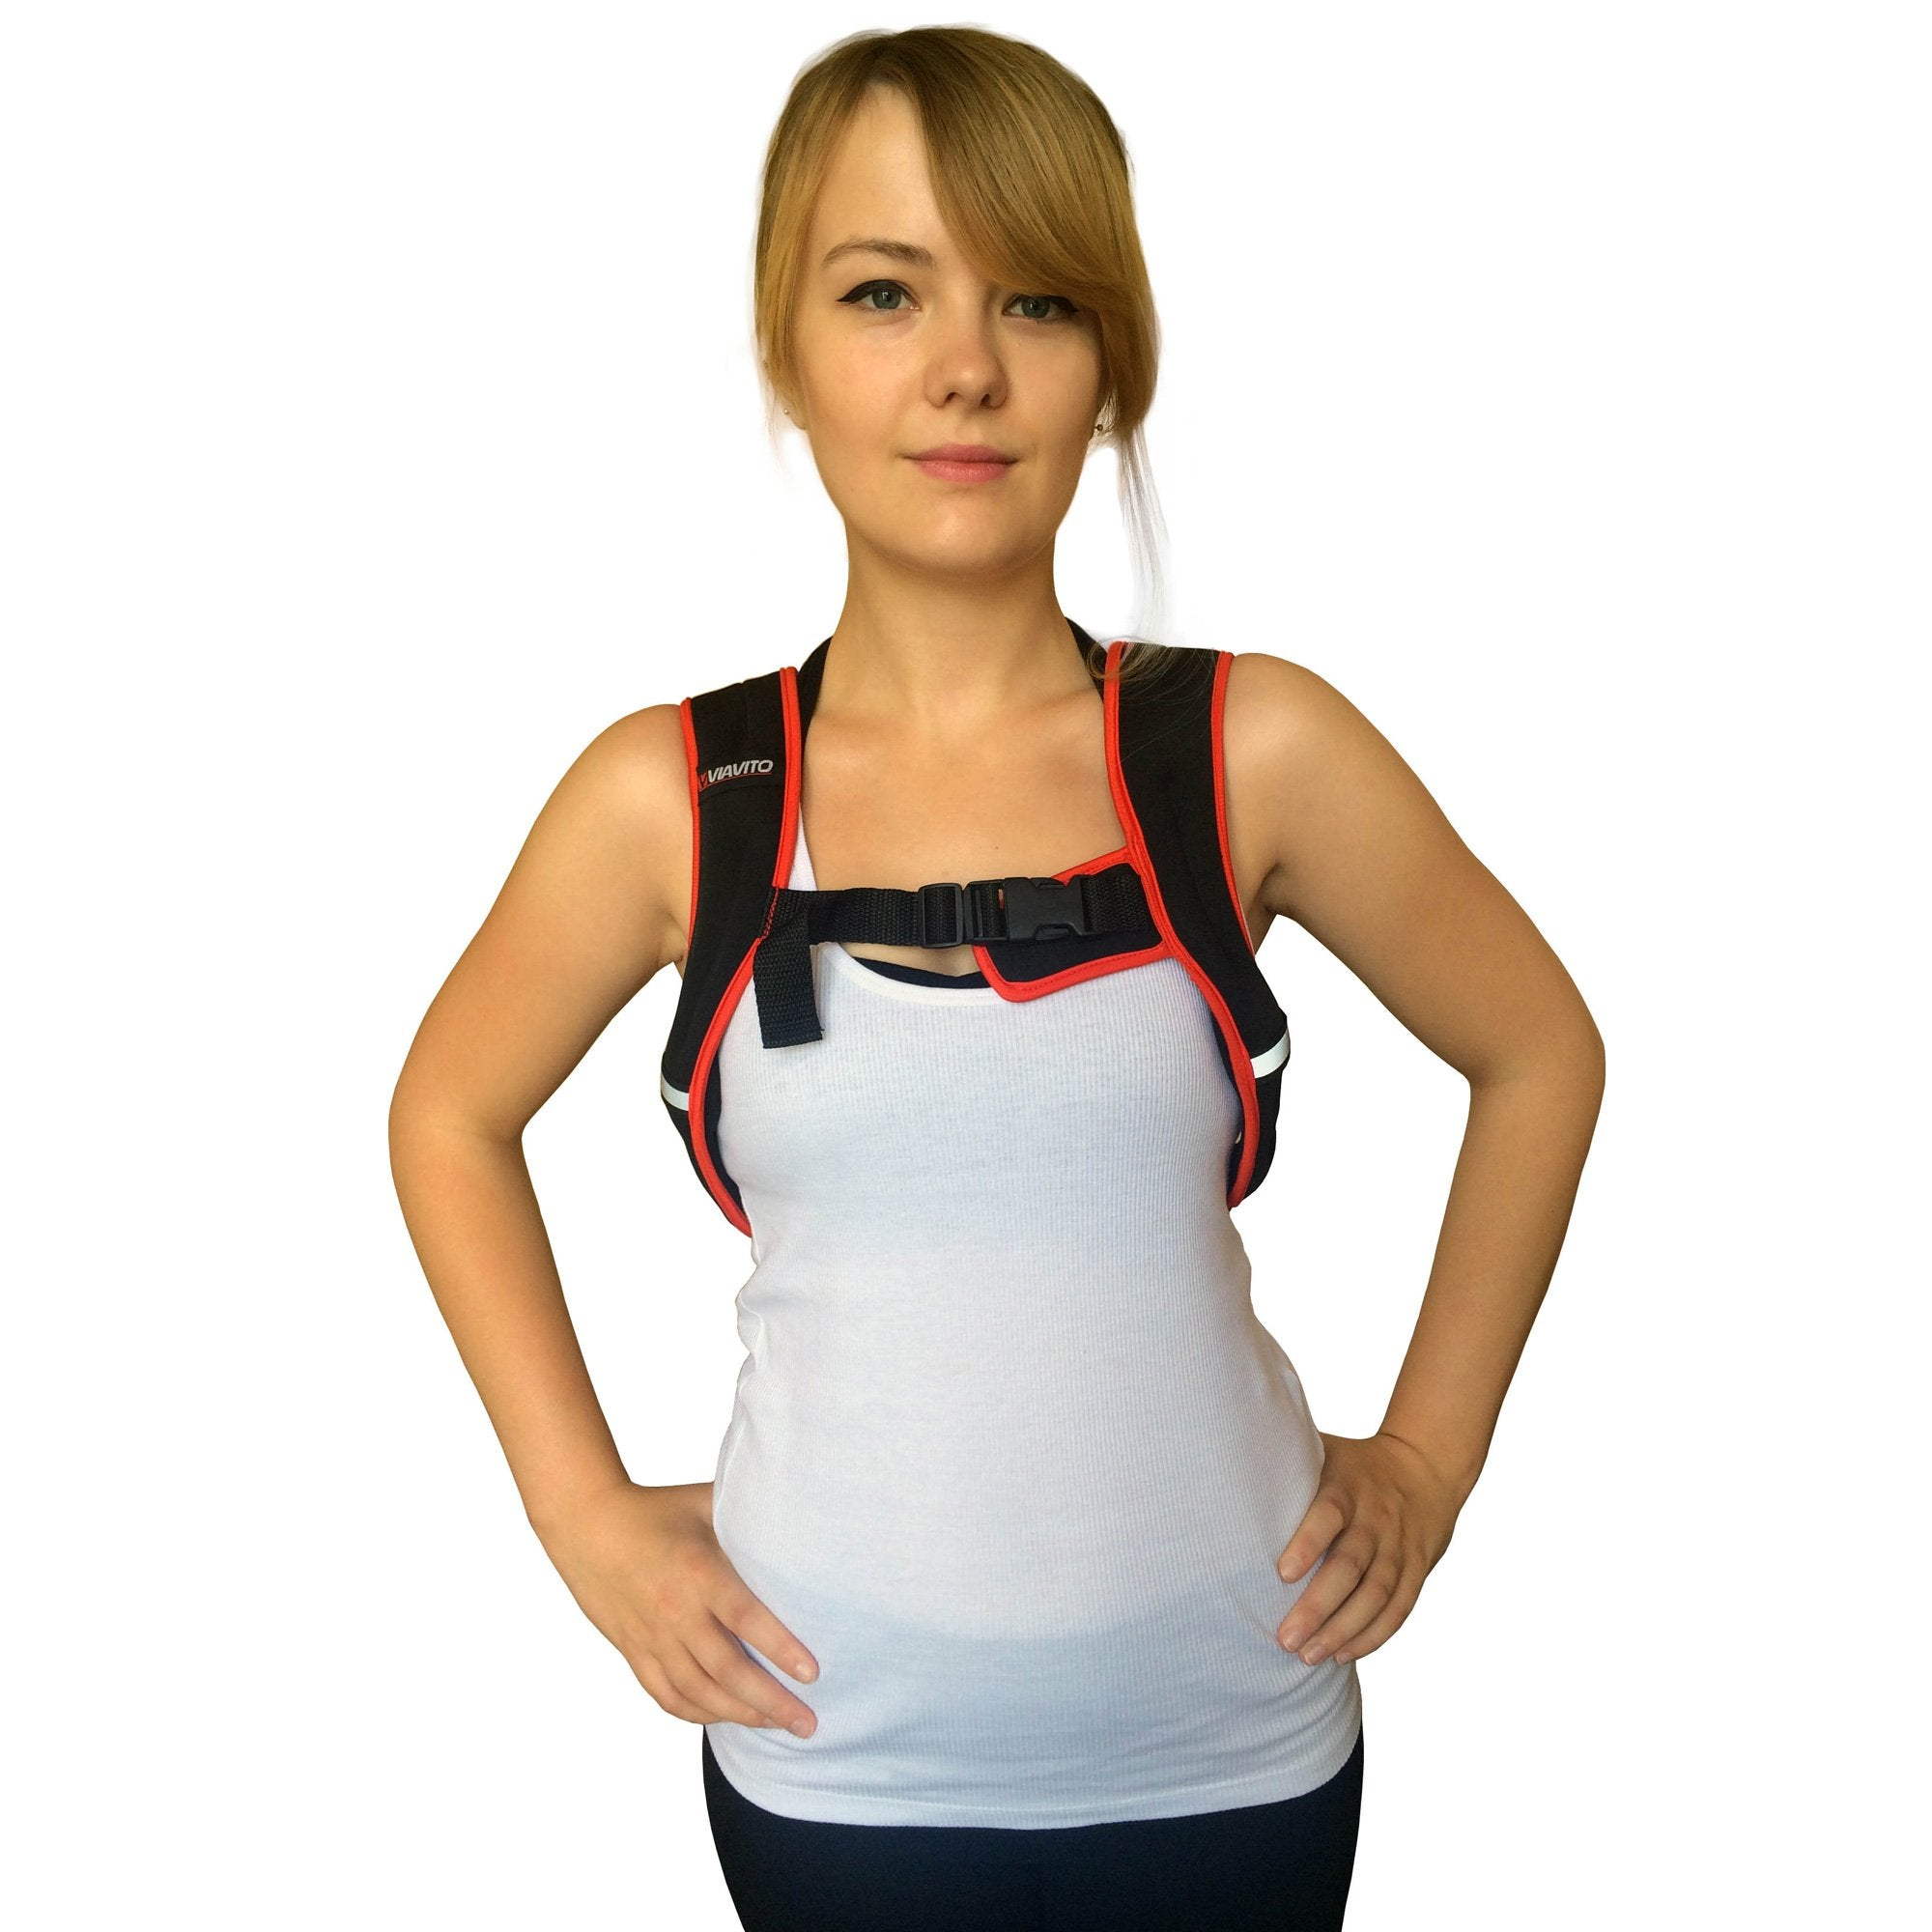 Image of Viavito 2.5kg Weighted Vest